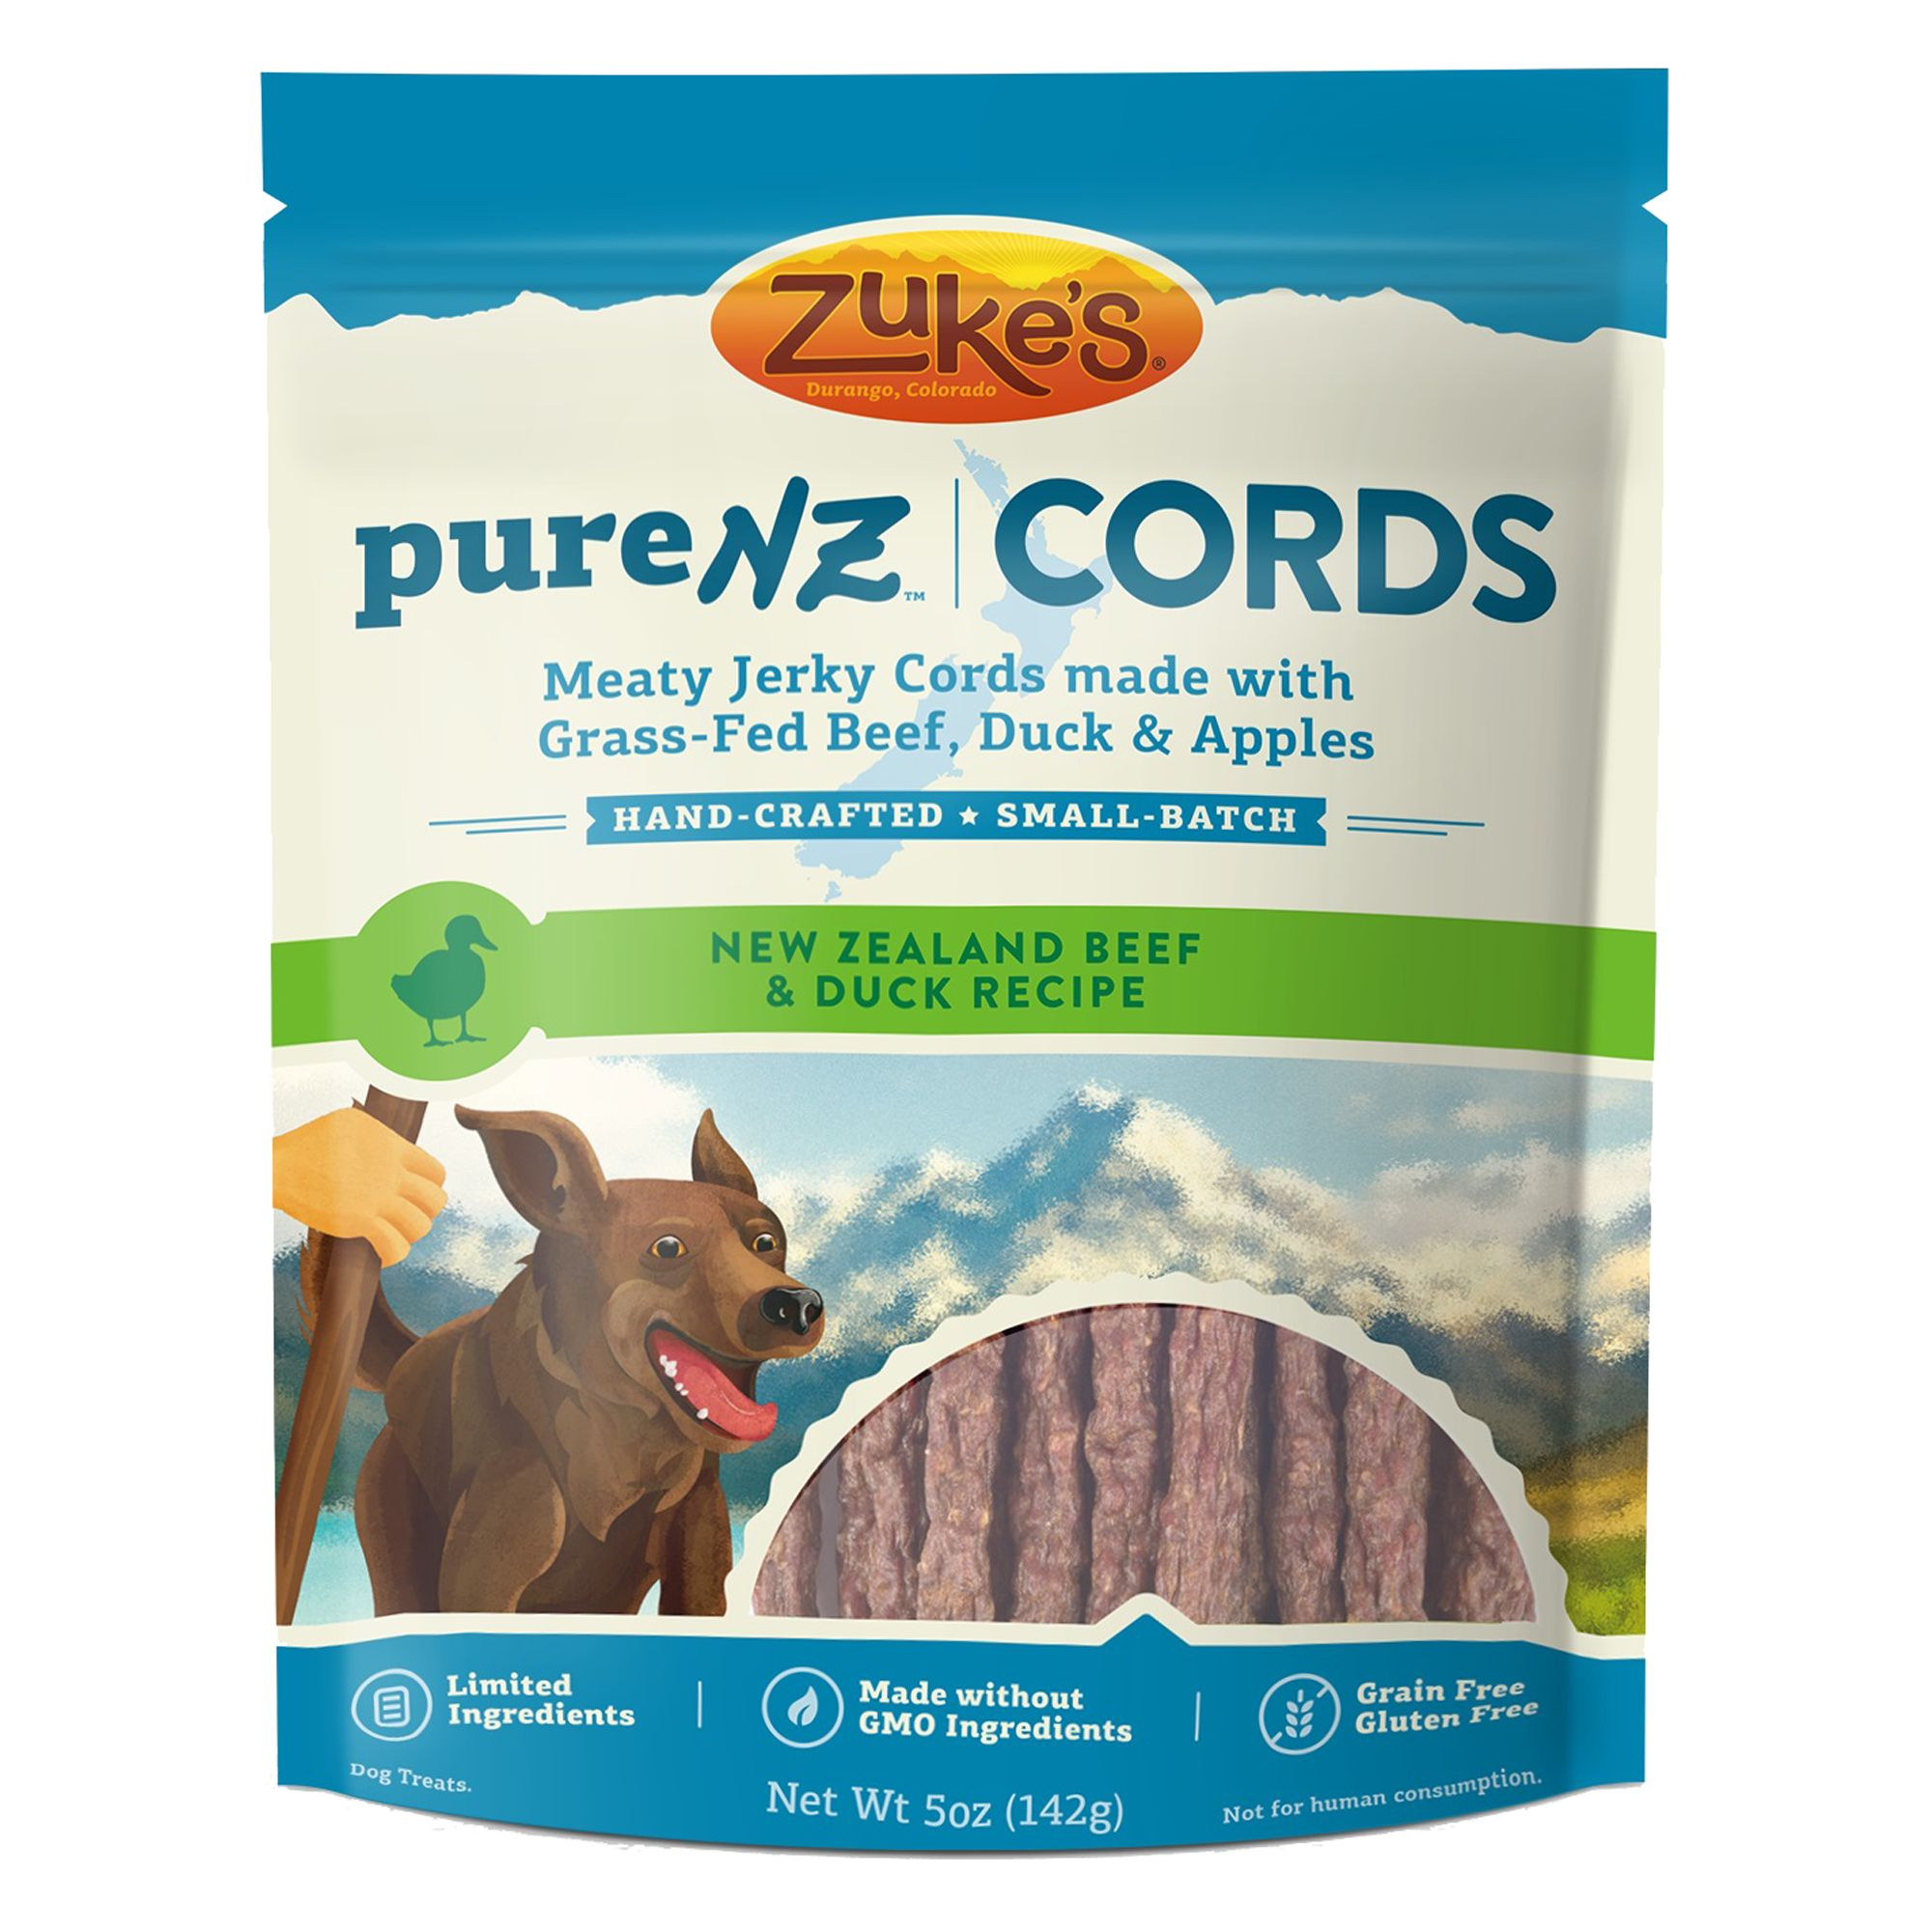 Zuke's® Pure NZ Cords Dog Treat - Grain Free, Limited In